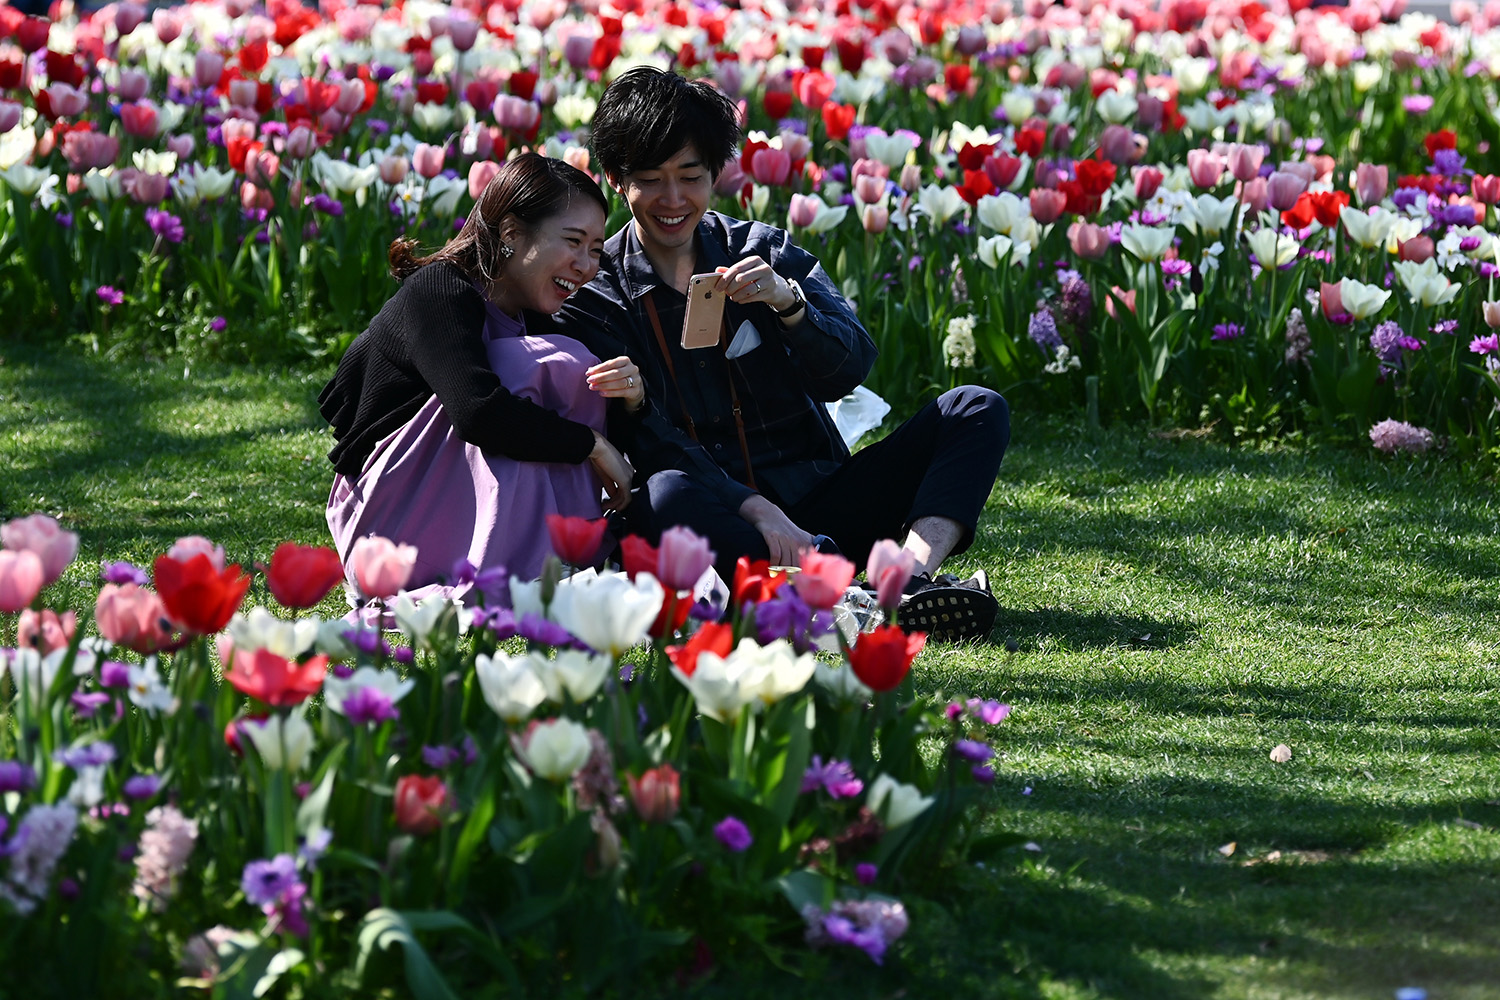 A man and woman chat amid tulips in Yamashita Park in Yokohama, Japan, on April 4. CHARLY TRIBALLEAU/AFP via Getty Images